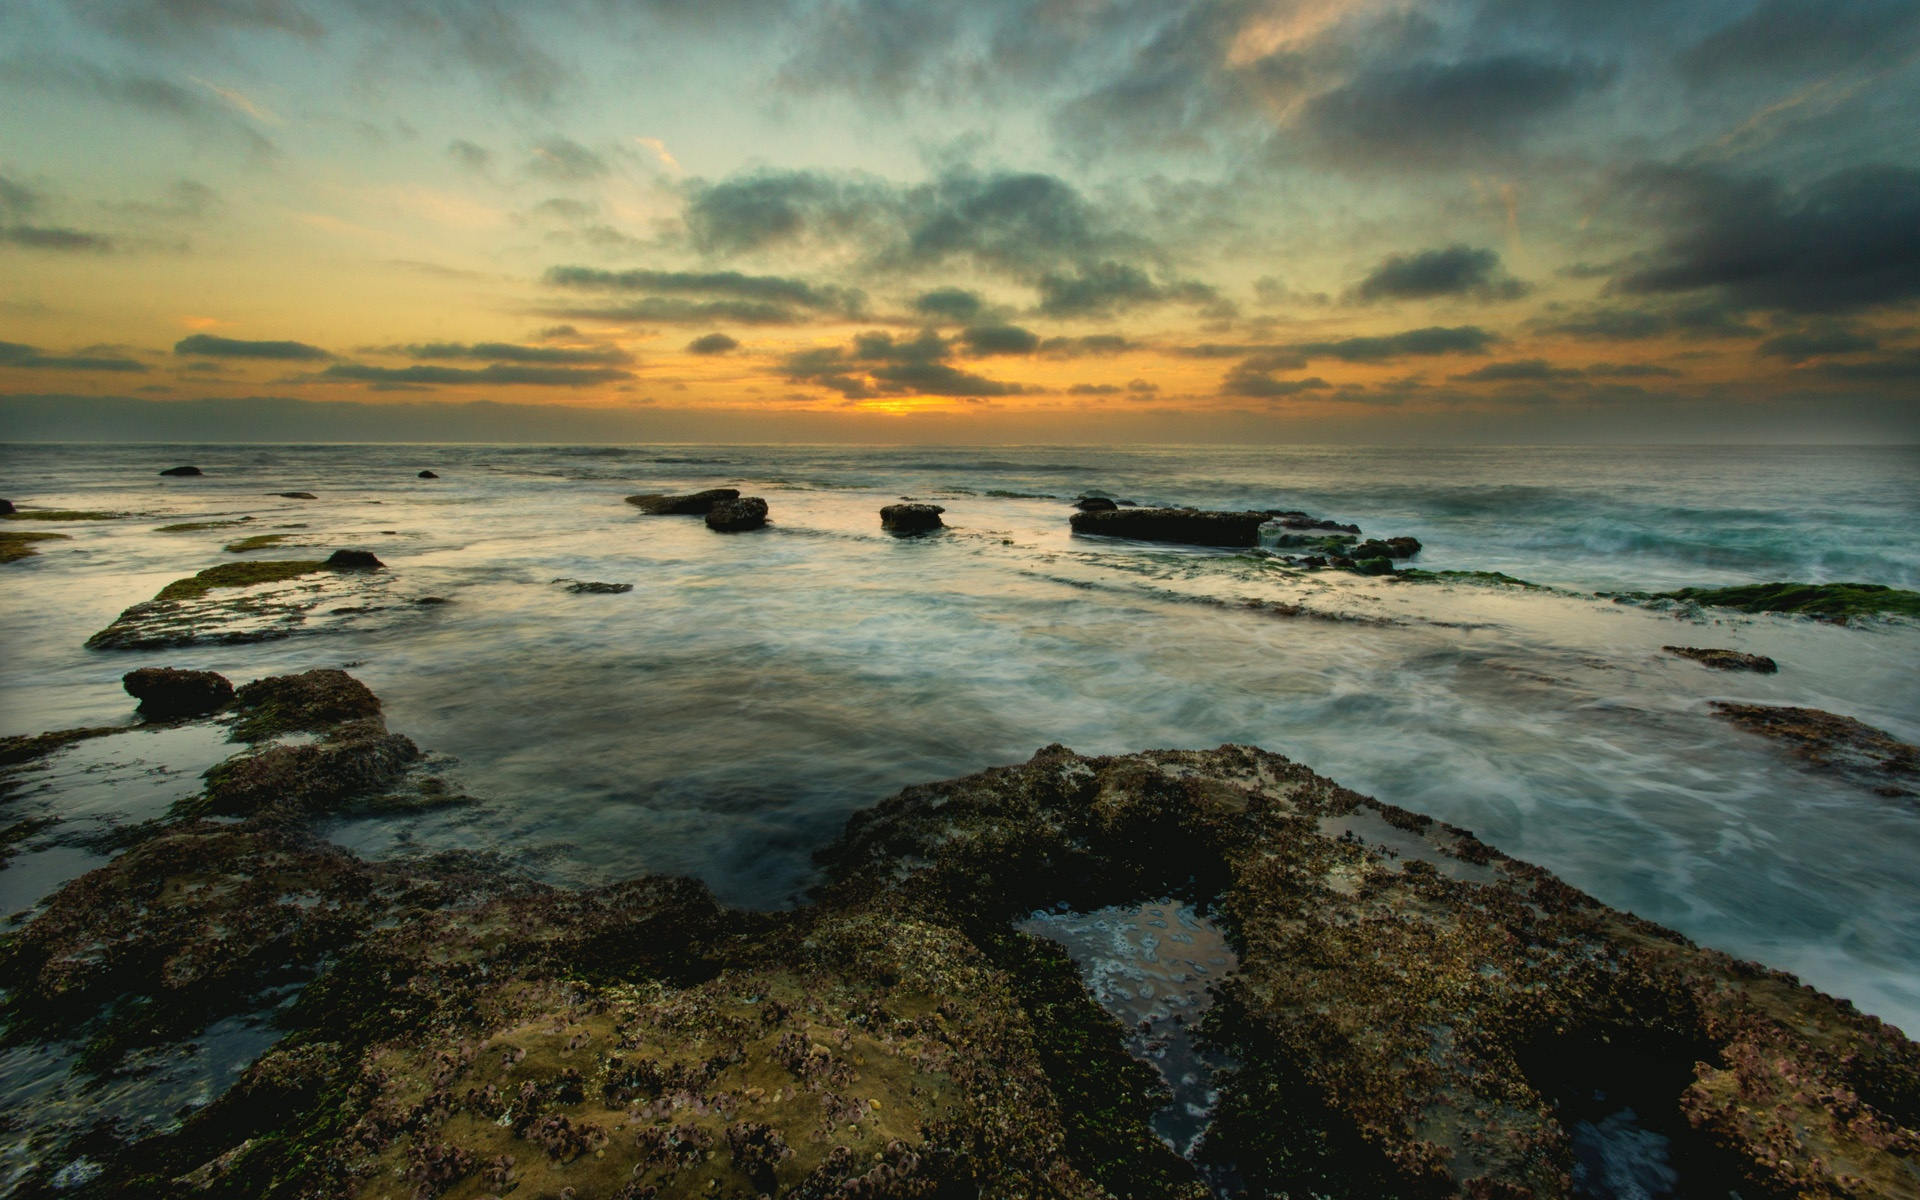 La Jolla After Sunset 1920x1200 wallpaper download page 725976 1920x1200